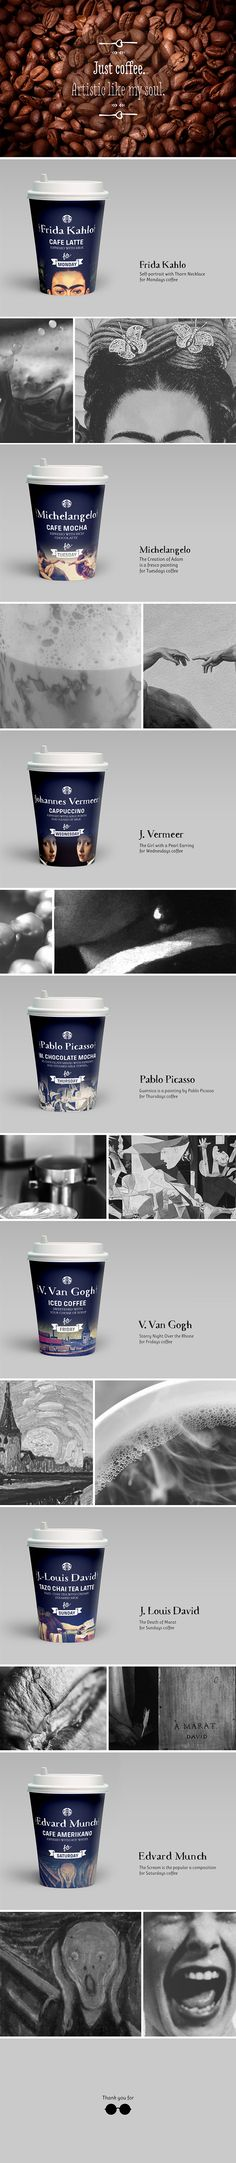 Artistic Coffee Cups by Caga Caga, via Behance